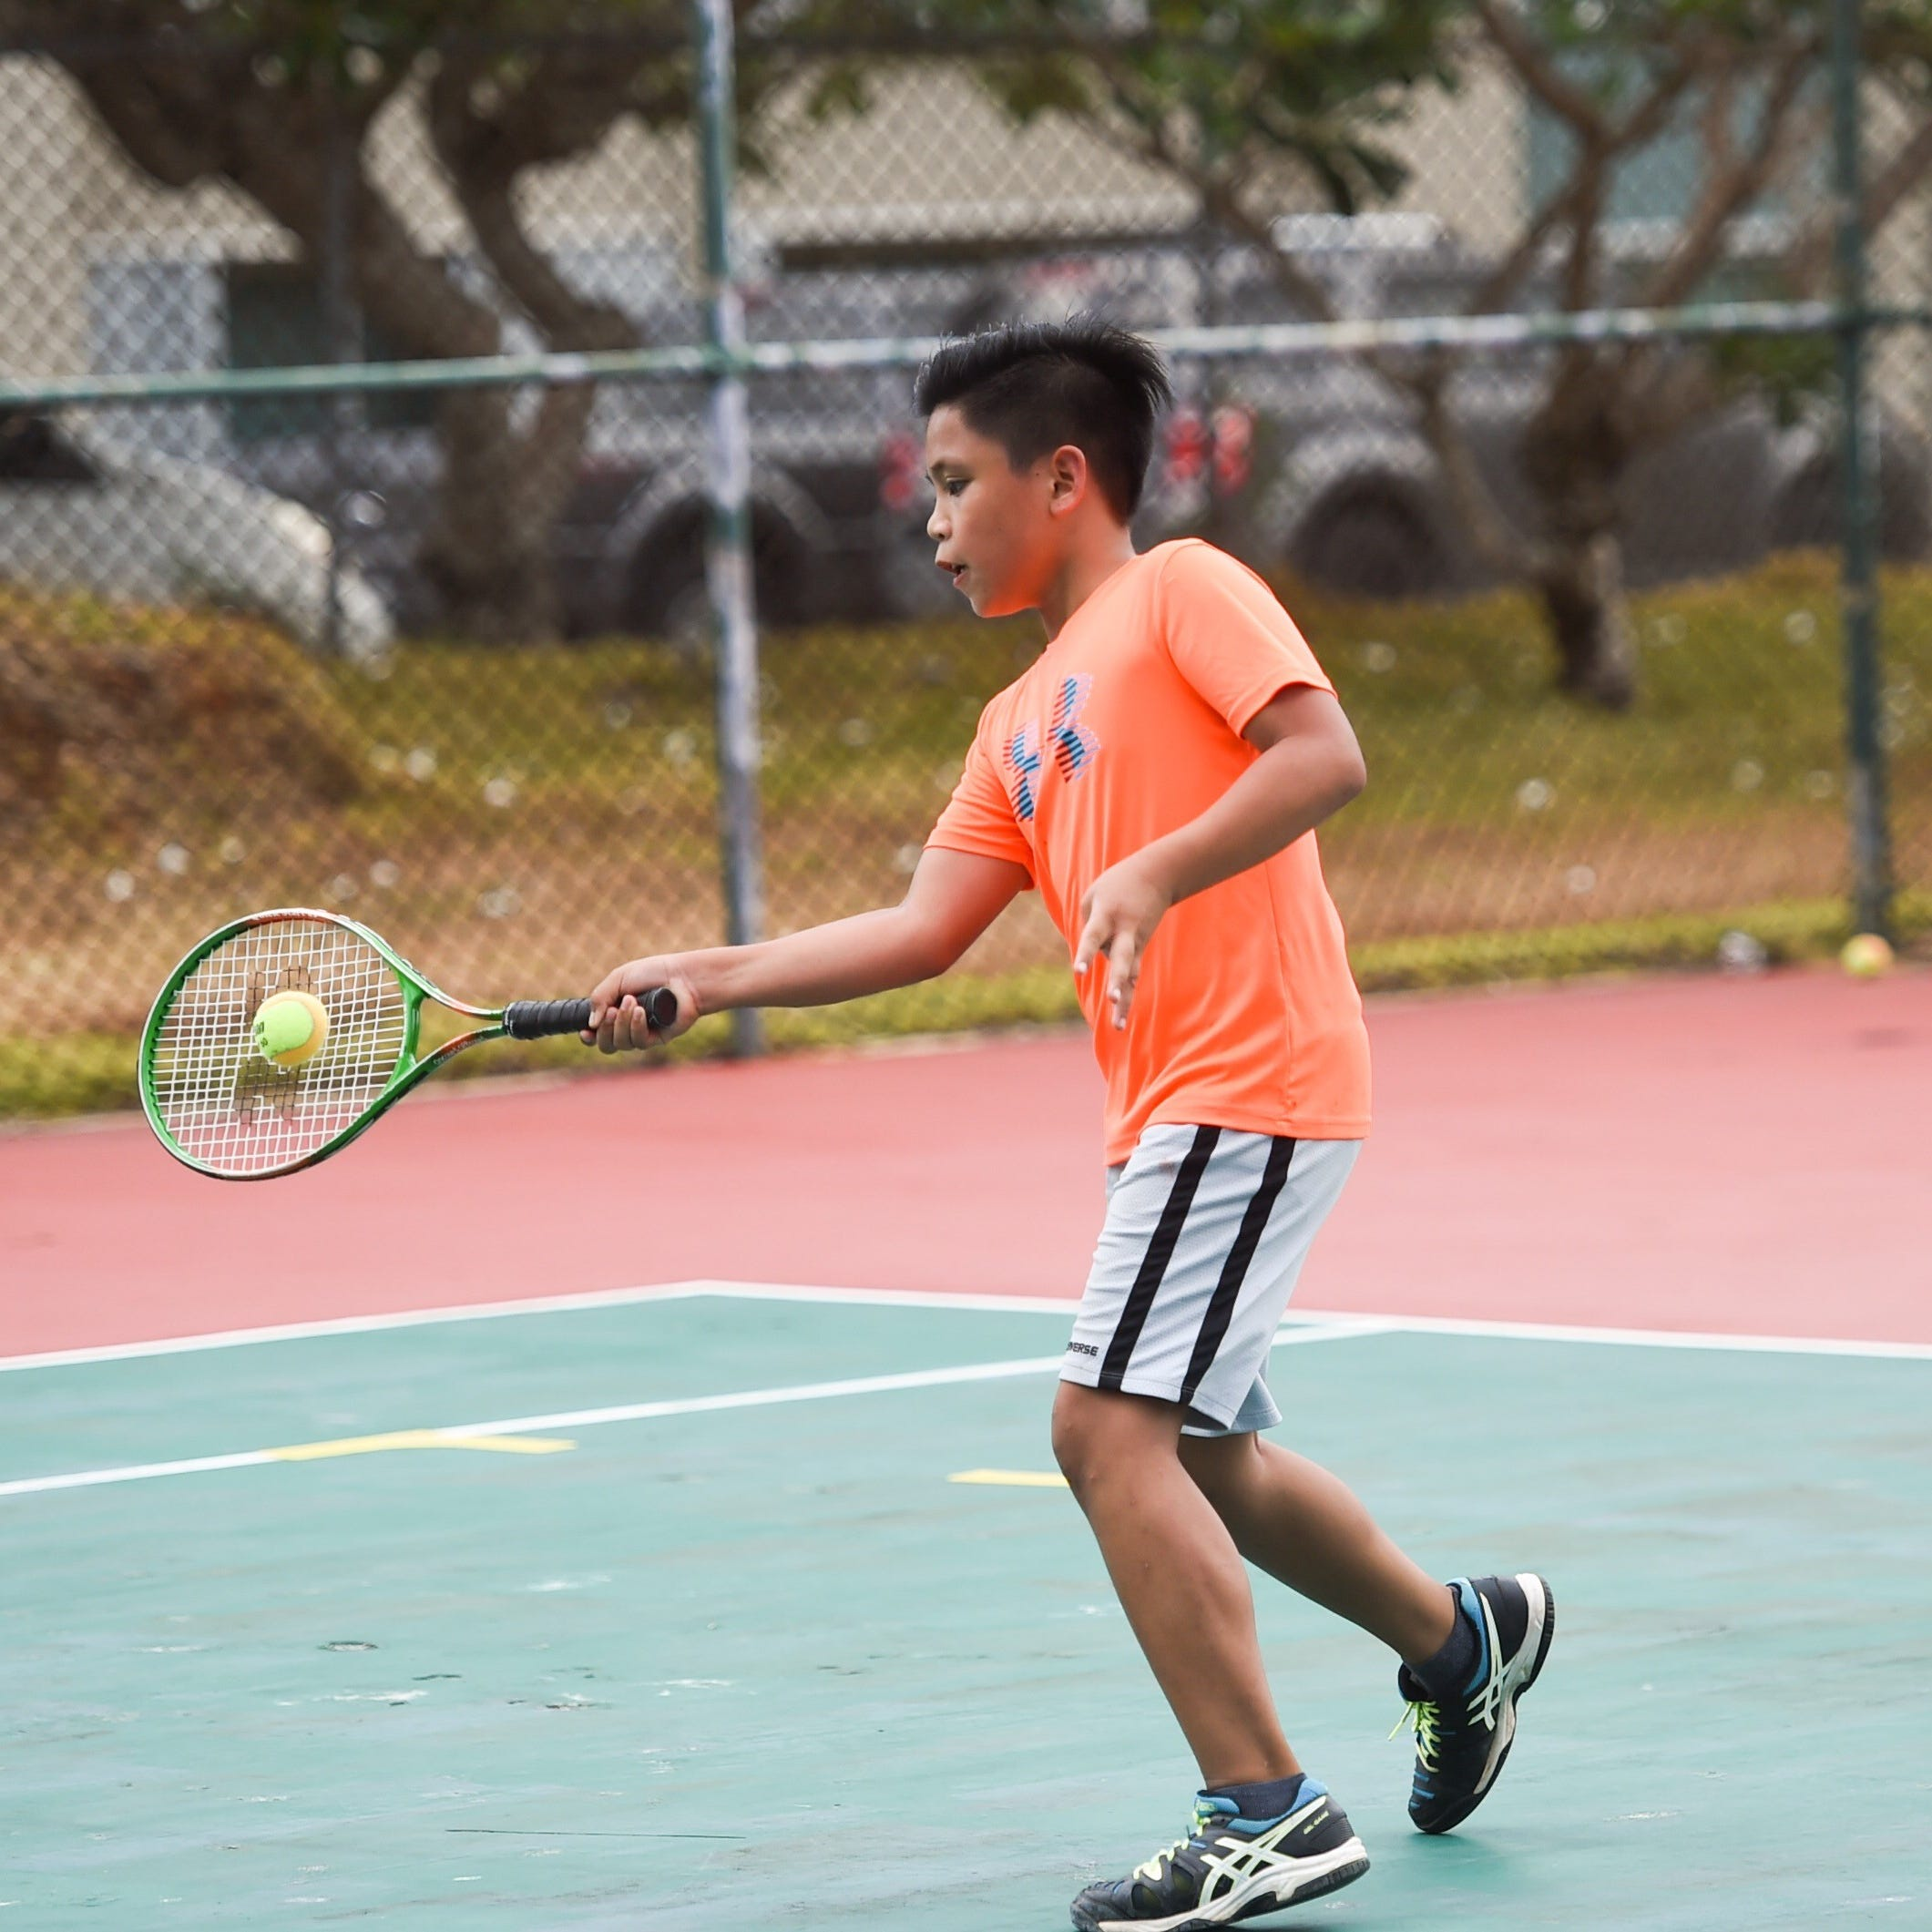 Sports Shorts: Tennis Academy of Guam hosts Summer camp; free tennis clinic June 15